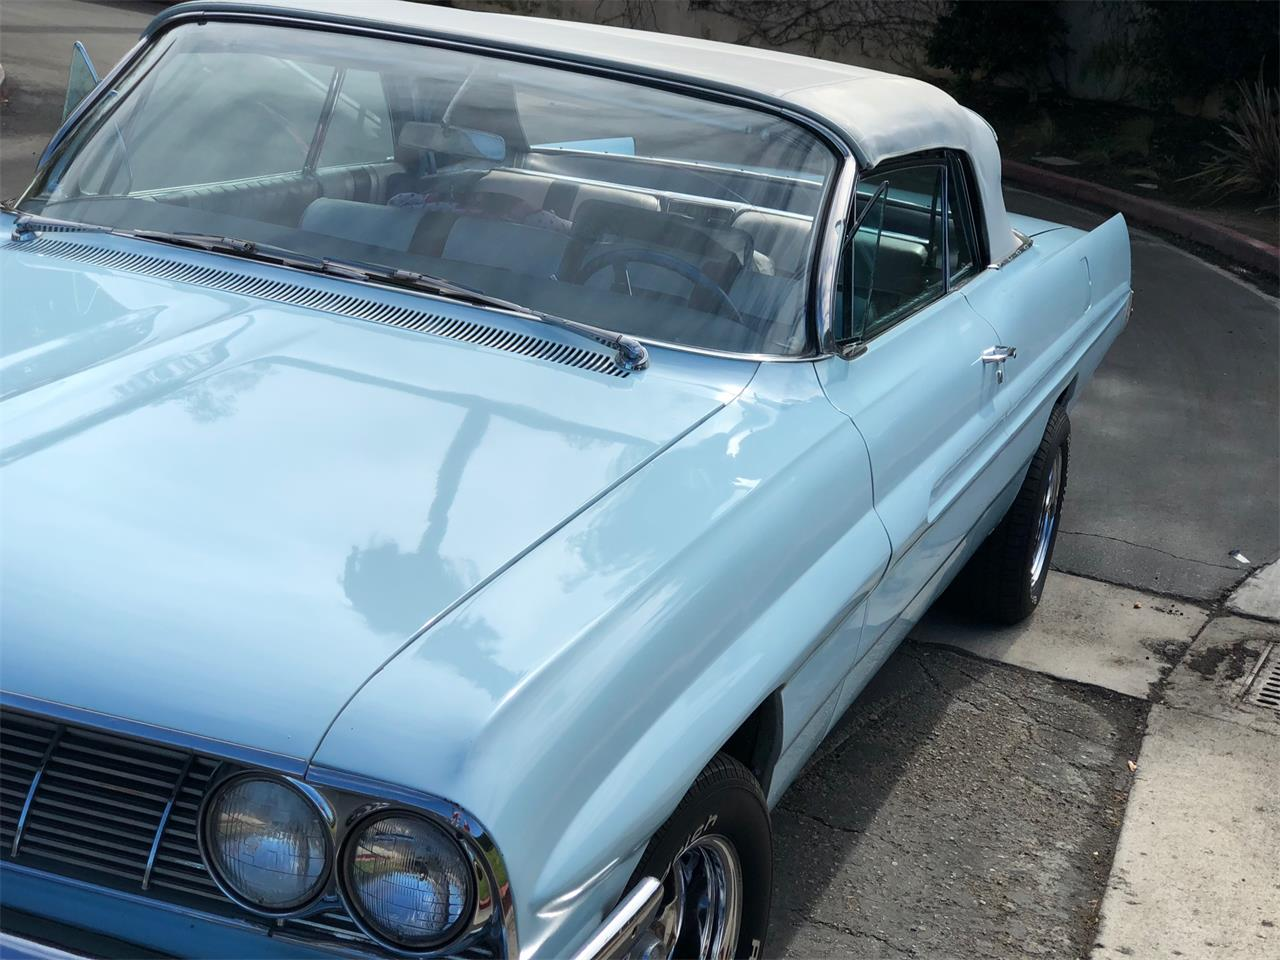 Large Picture of '61 Pontiac Bonneville - $18,995.00 Offered by a Private Seller - ASQZ